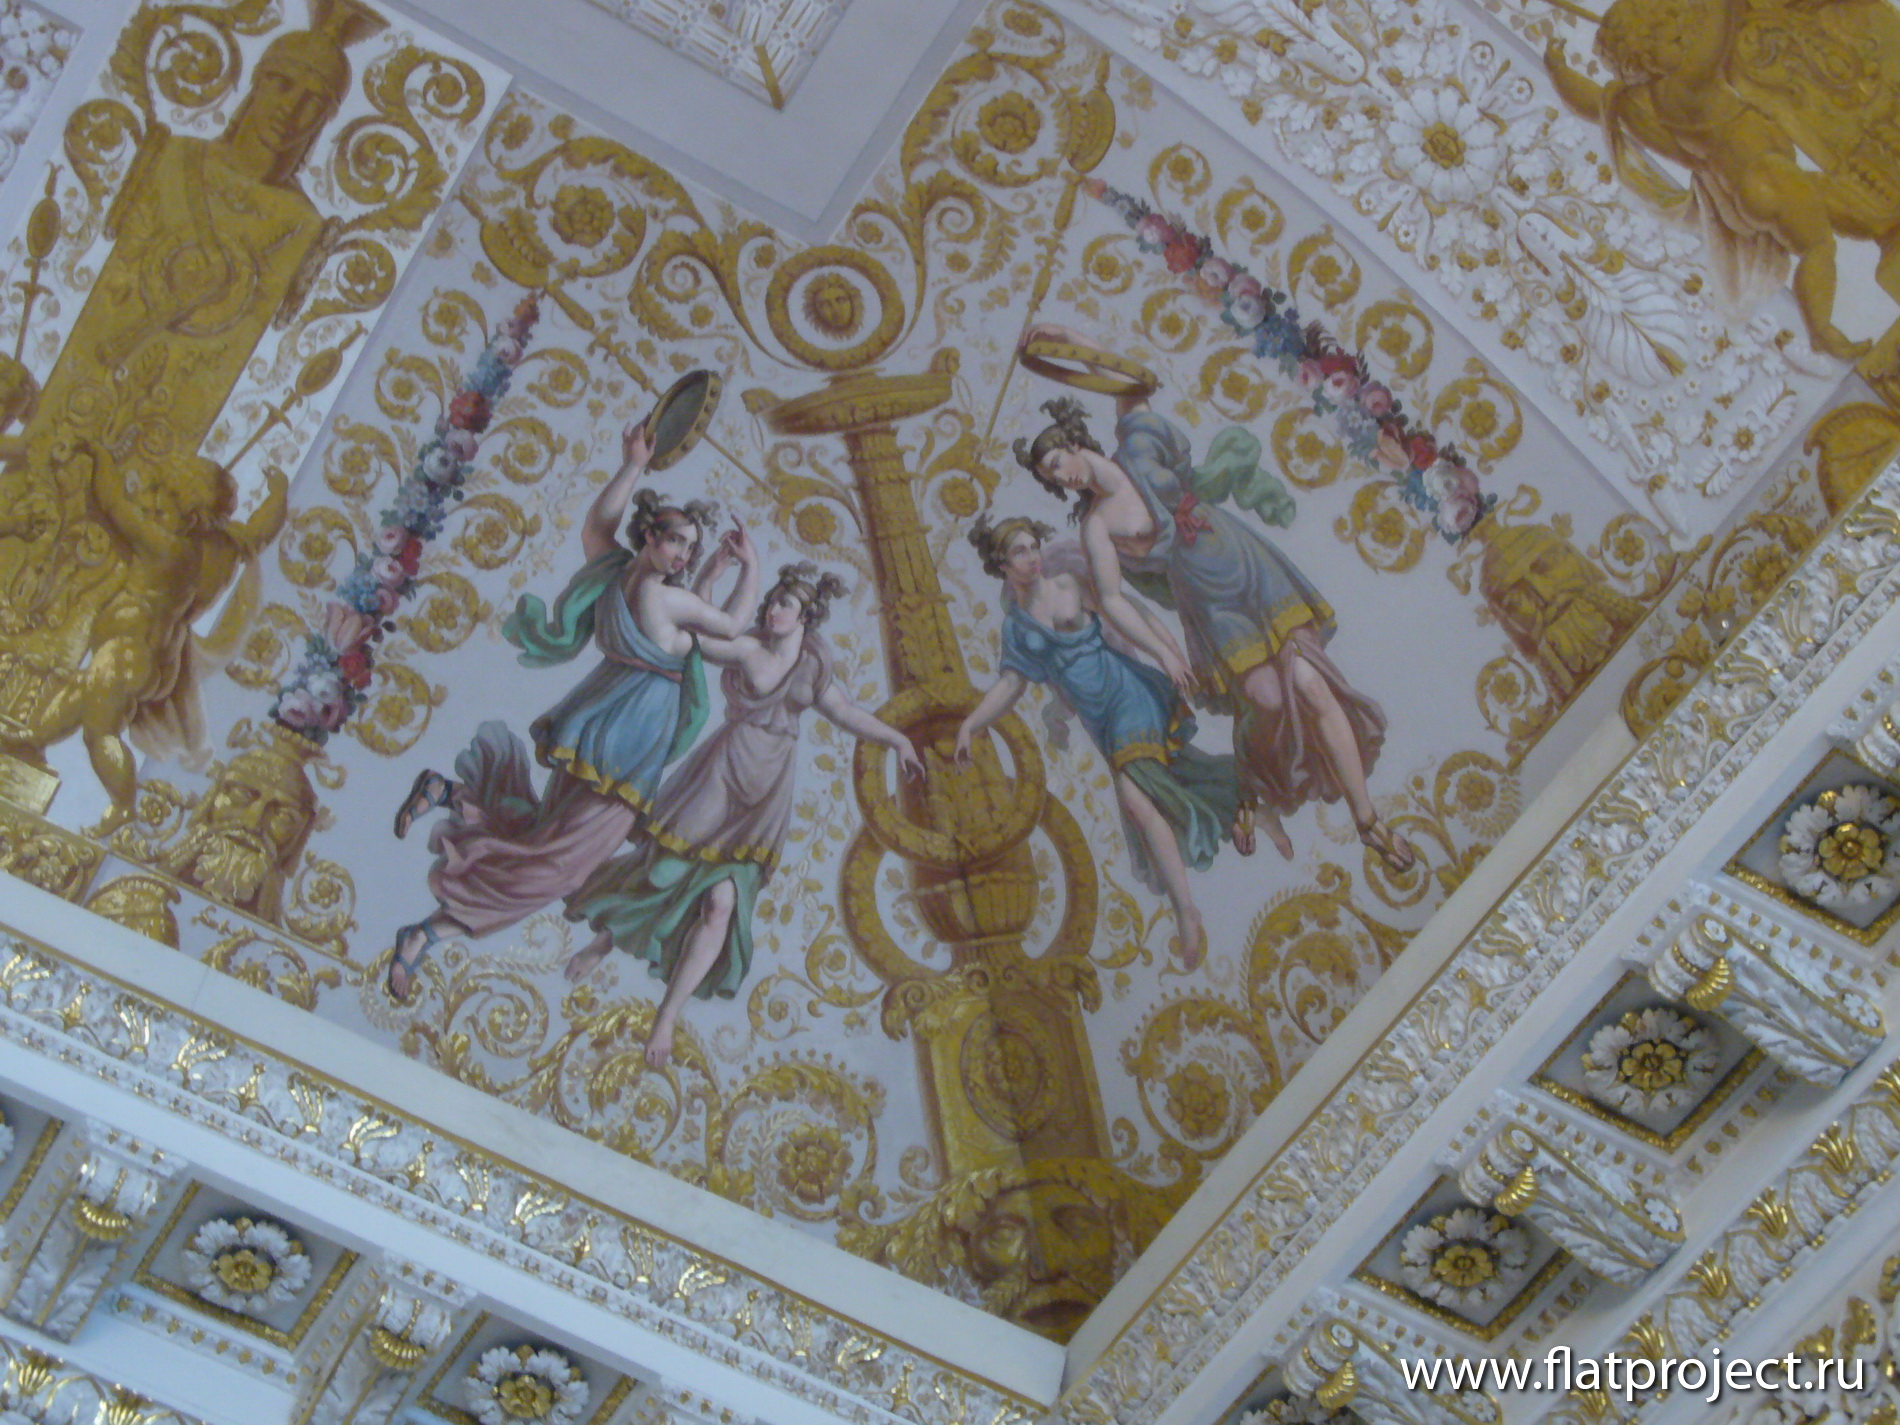 The State Russian museum interiors – photo 12